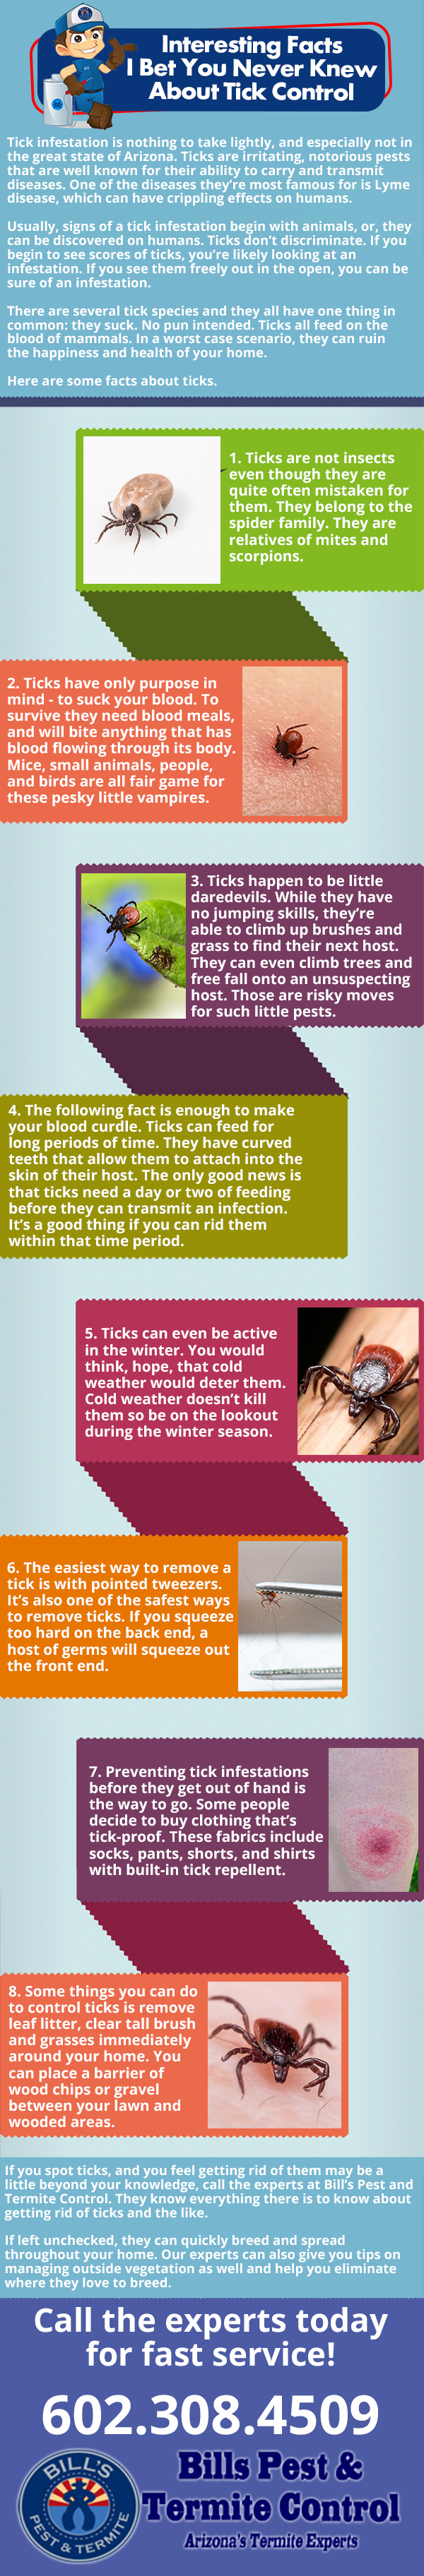 Interesting Facts I Bet You Never Knew About Tick Control